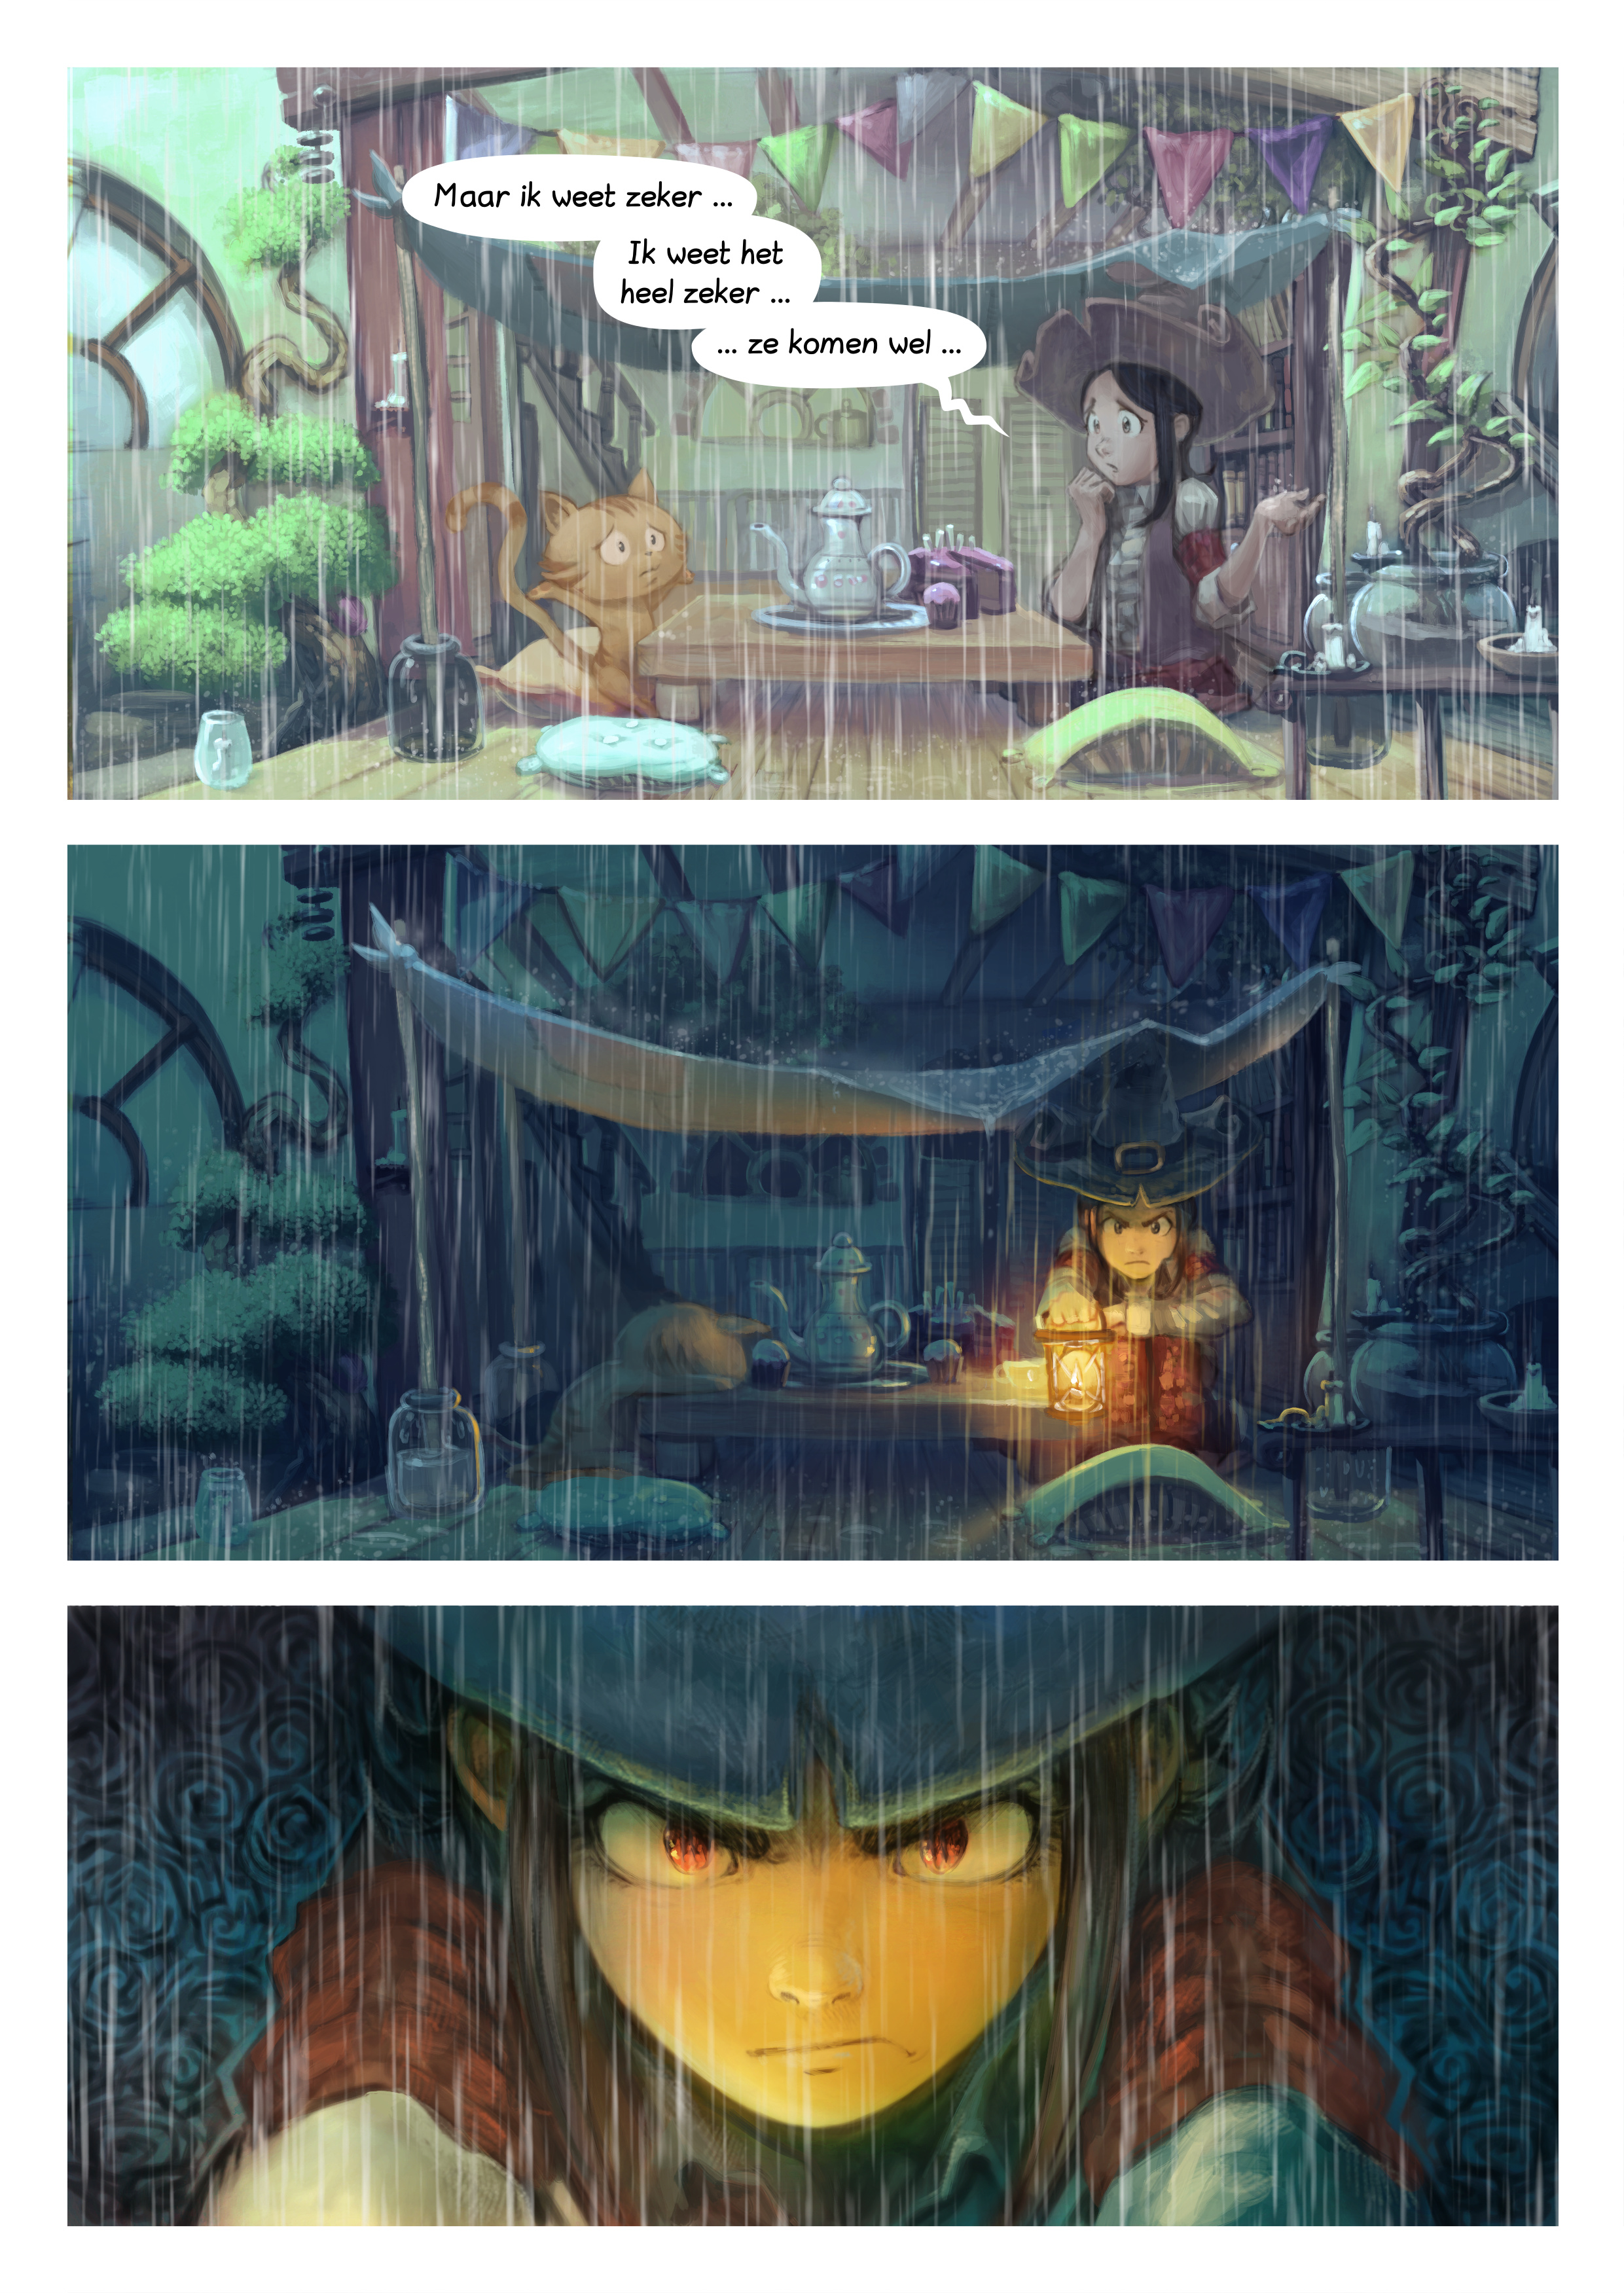 A webcomic page of Pepper&Carrot, aflevering 8 [nl], pagina 4